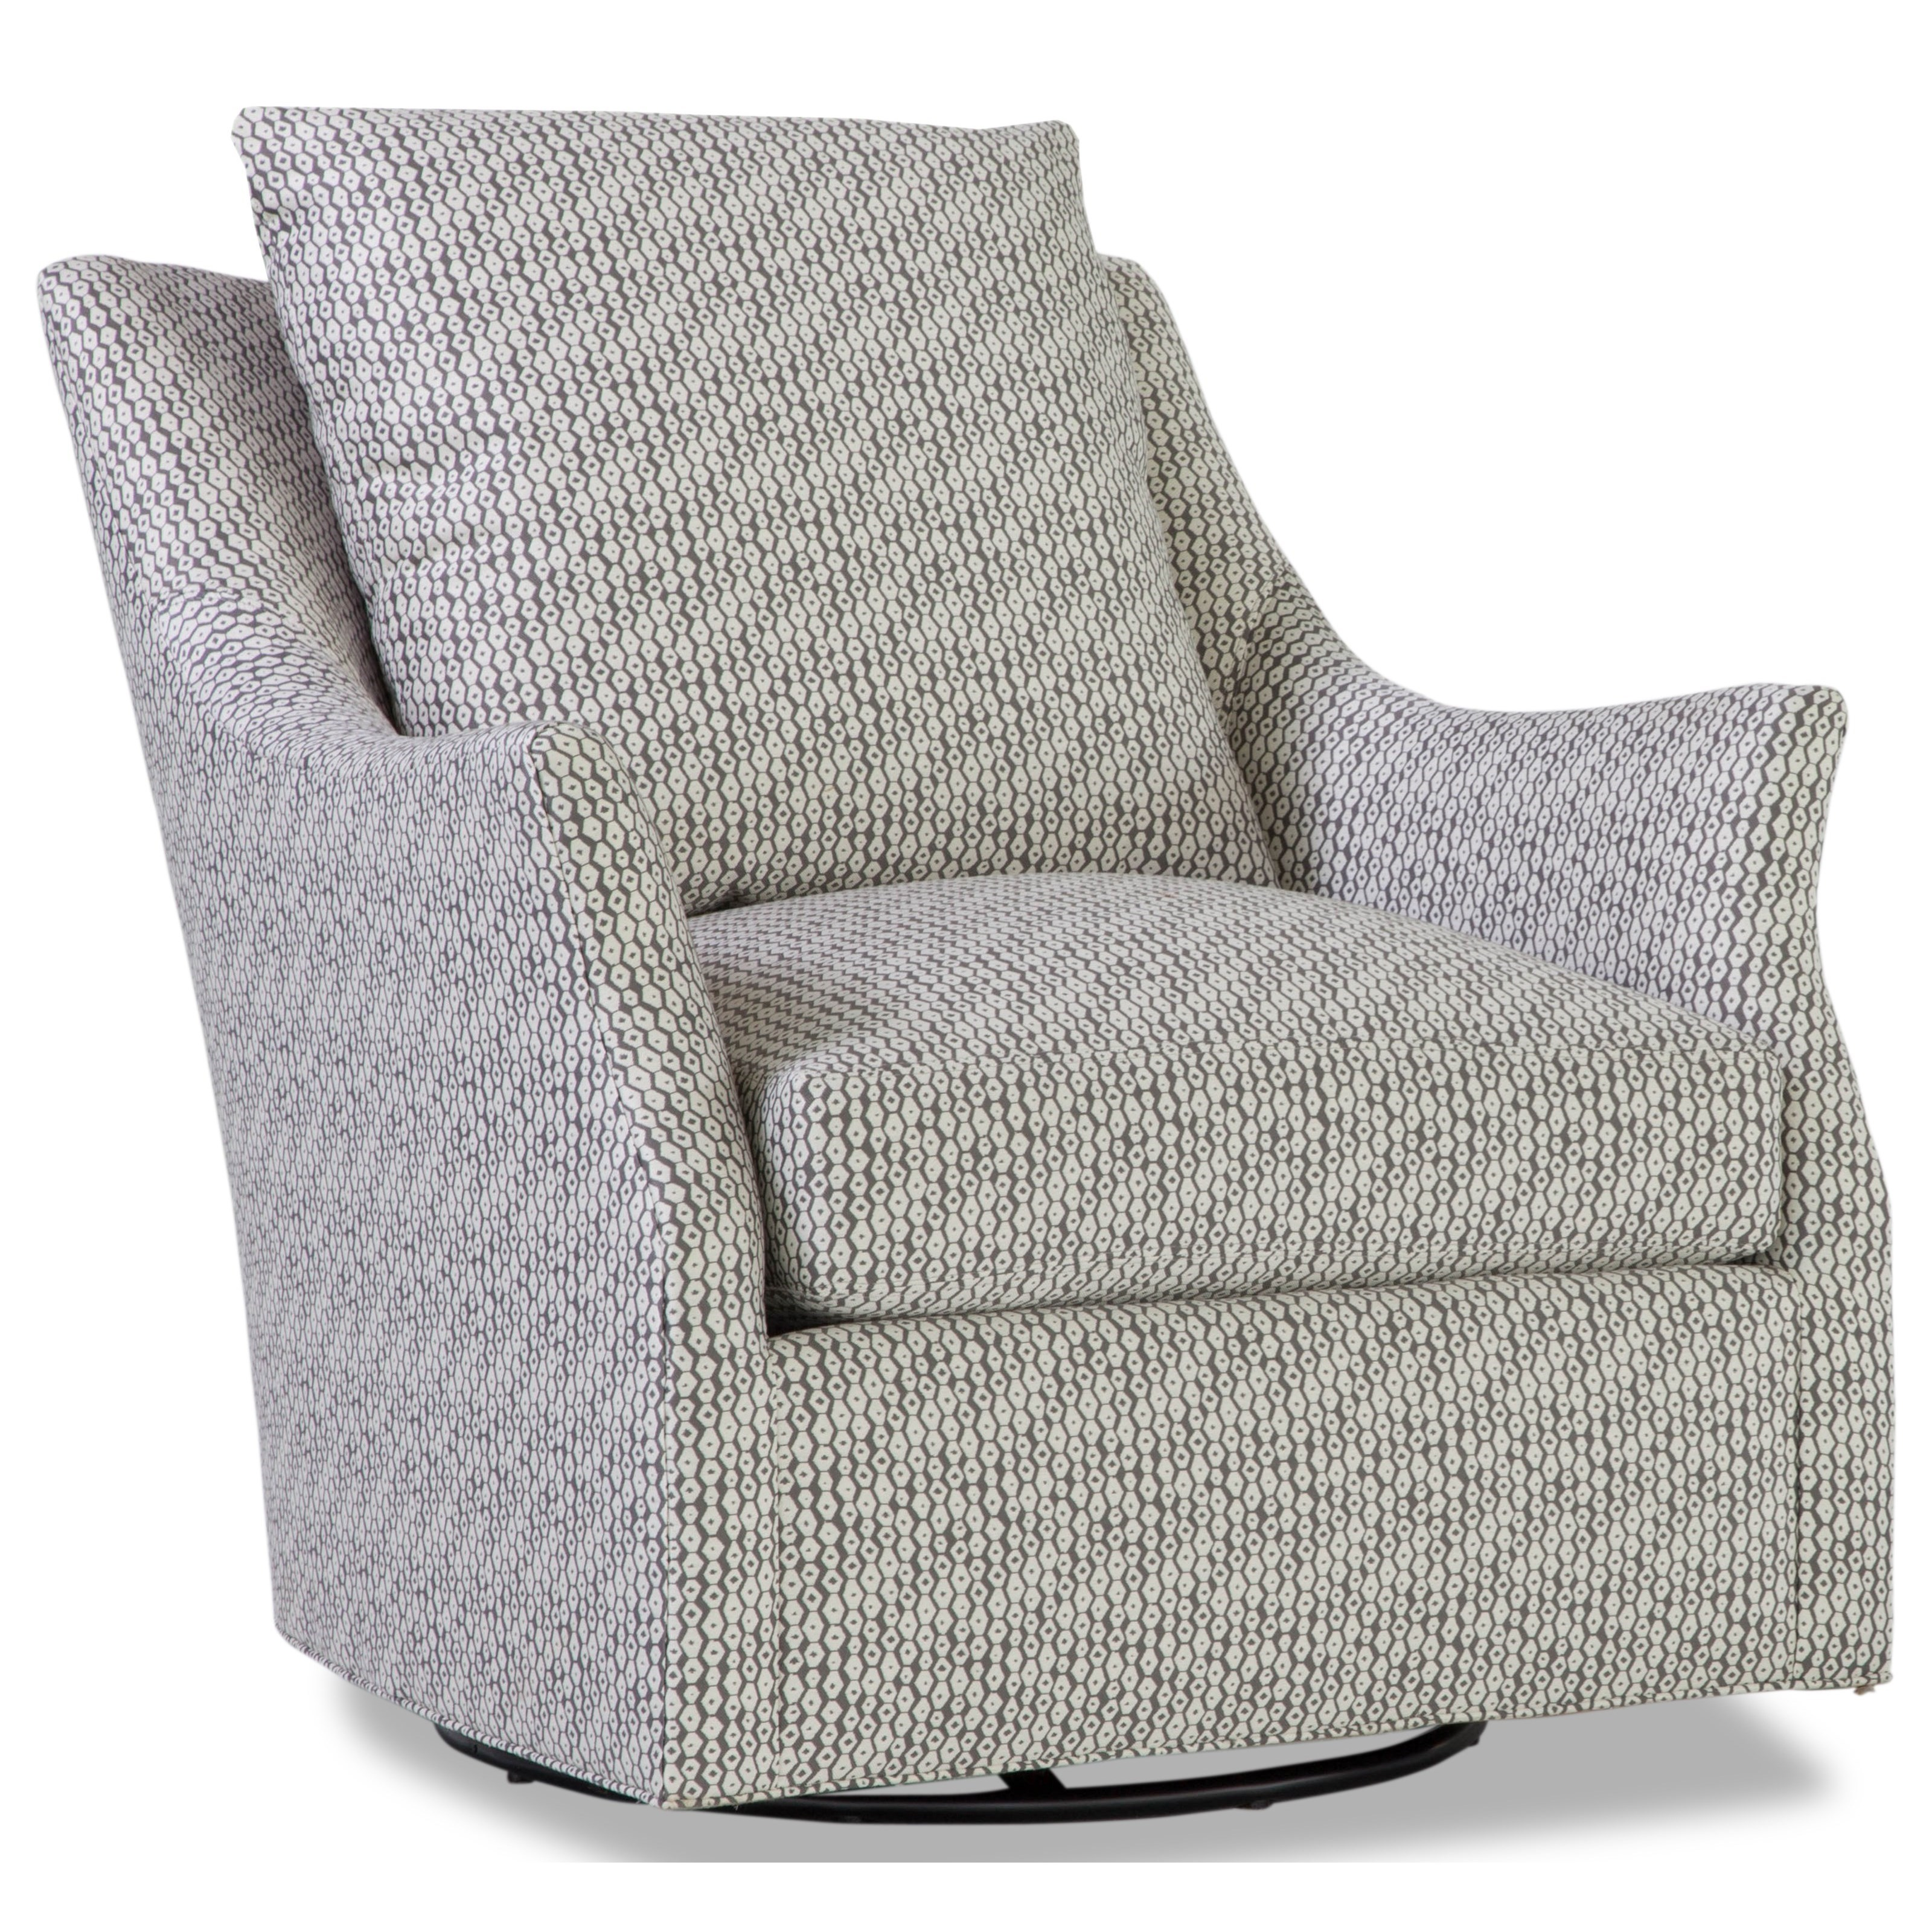 7270 Swivel Glider by Huntington House at Belfort Furniture